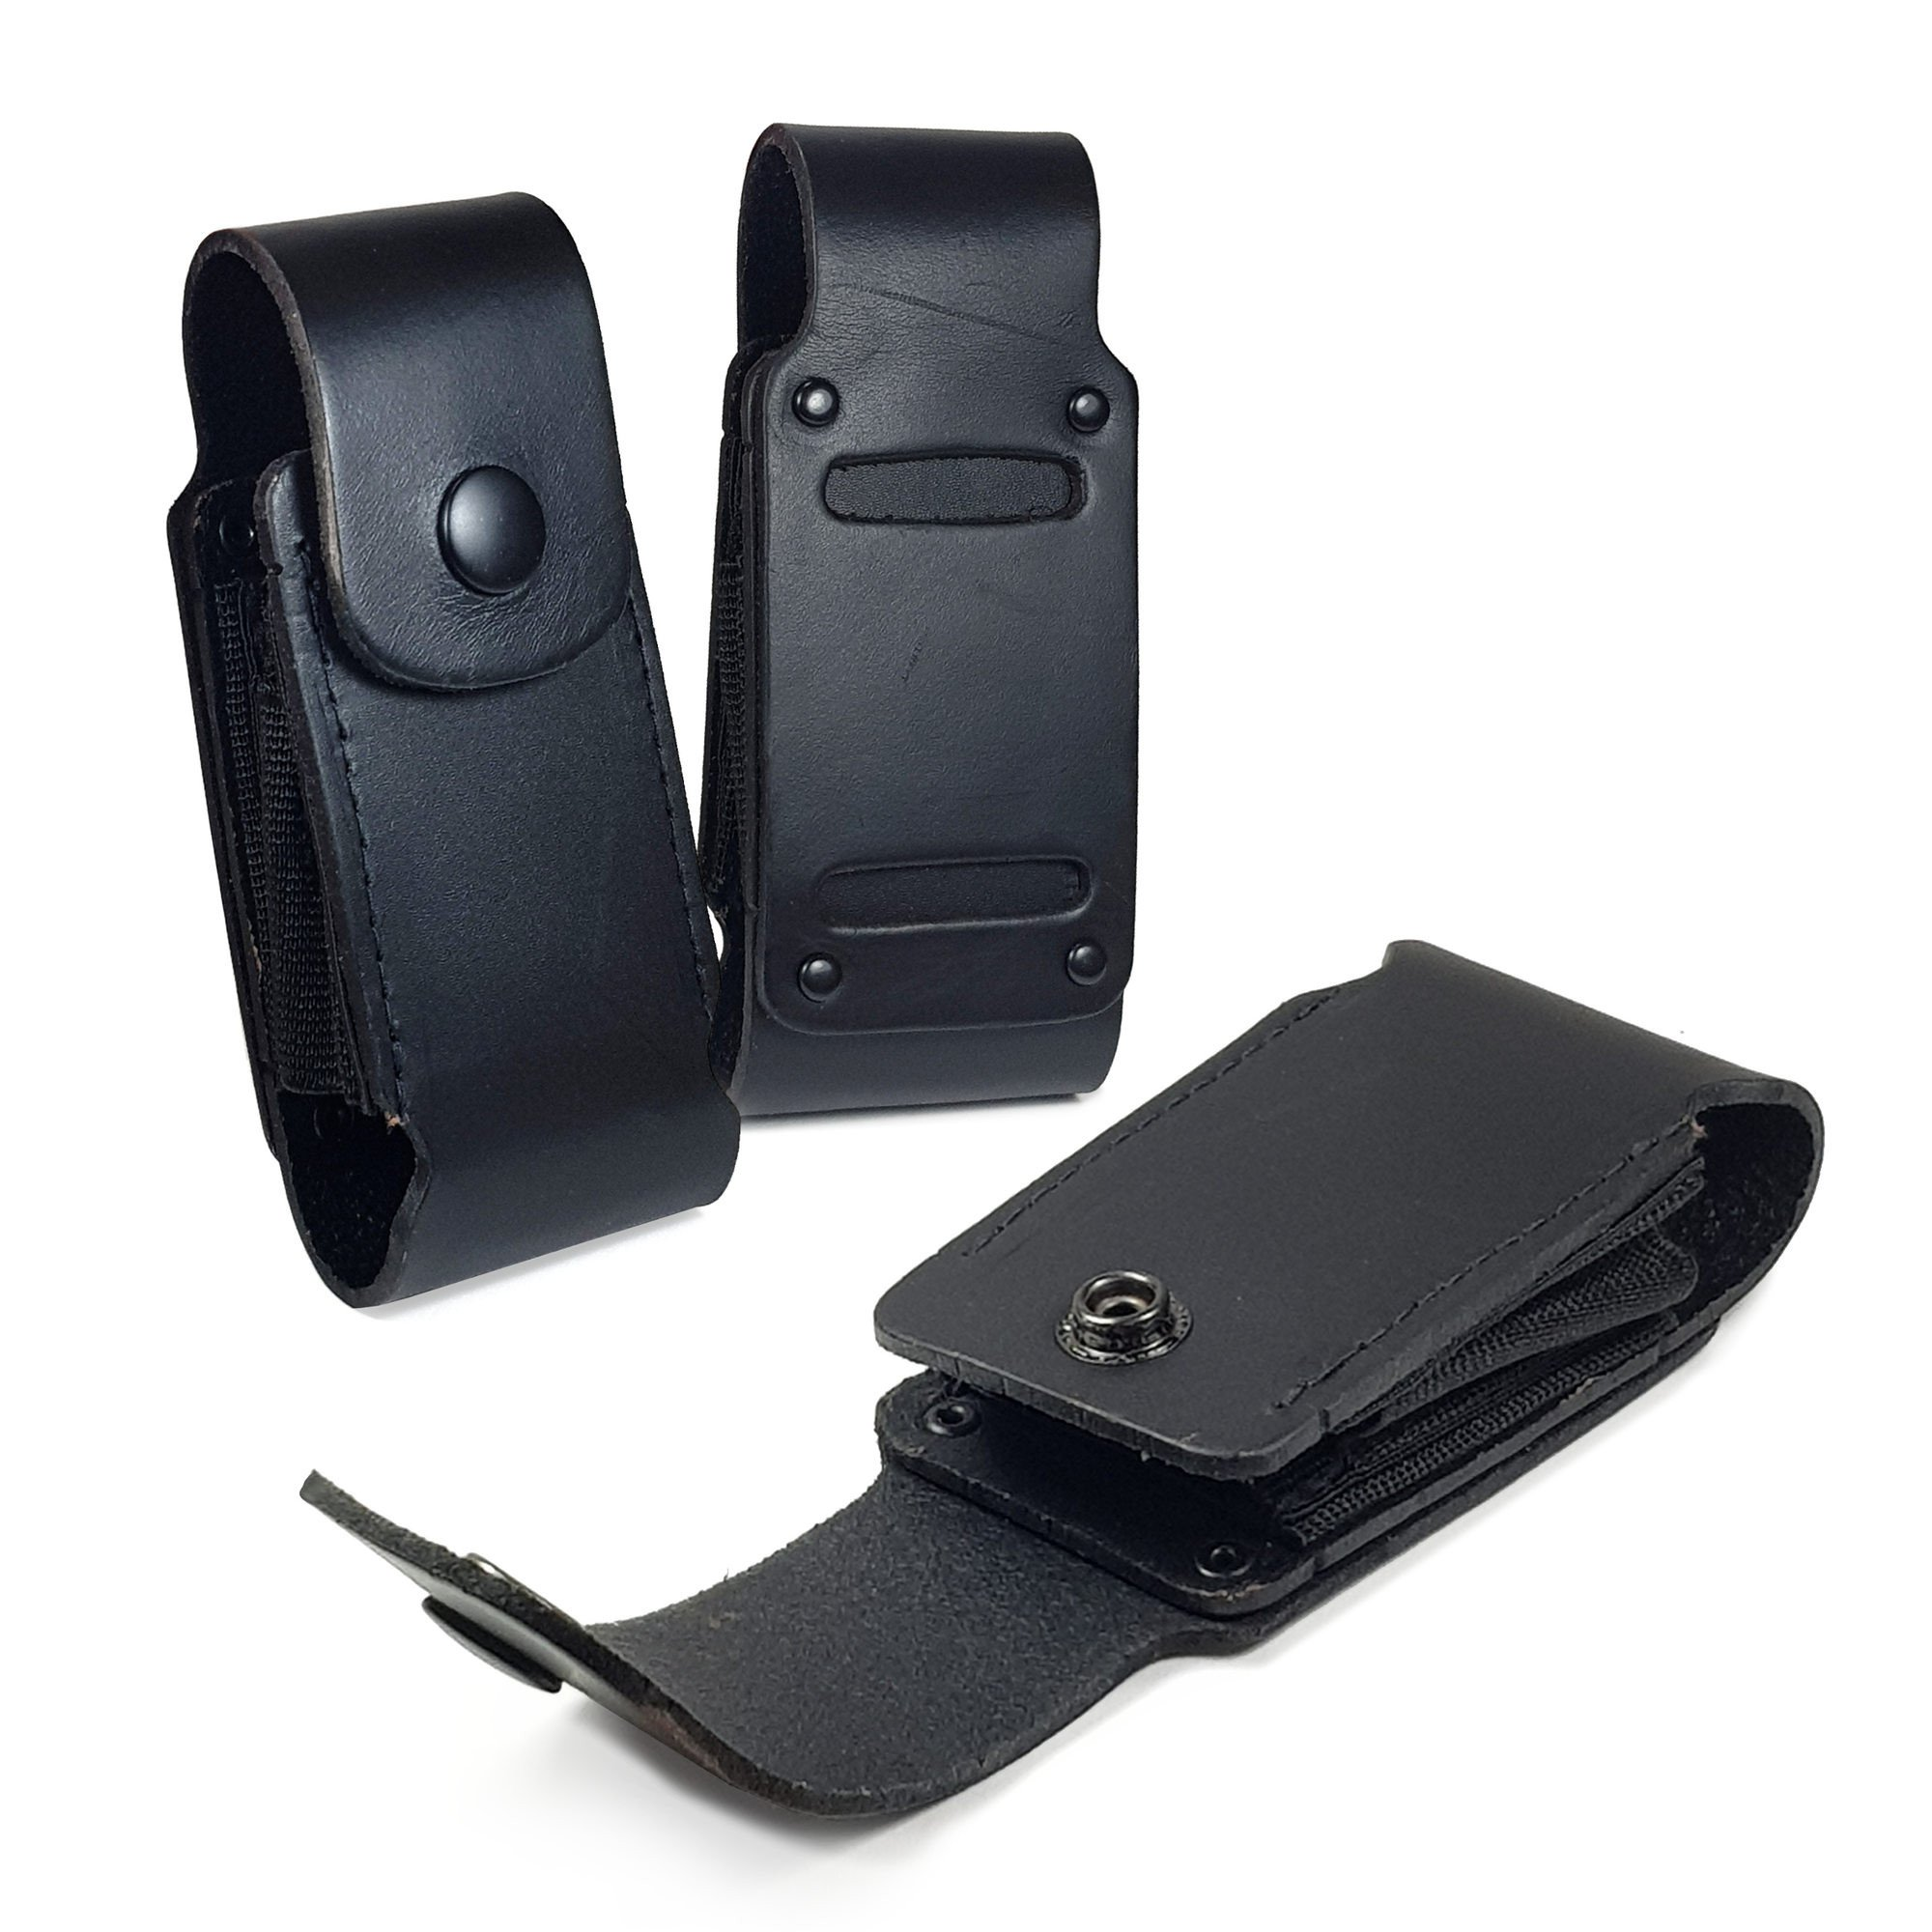 TUFF LUV Genuine Leather Case Sheath Pouch for Leatherman Super Tool 300/Surge - WP503 - Black